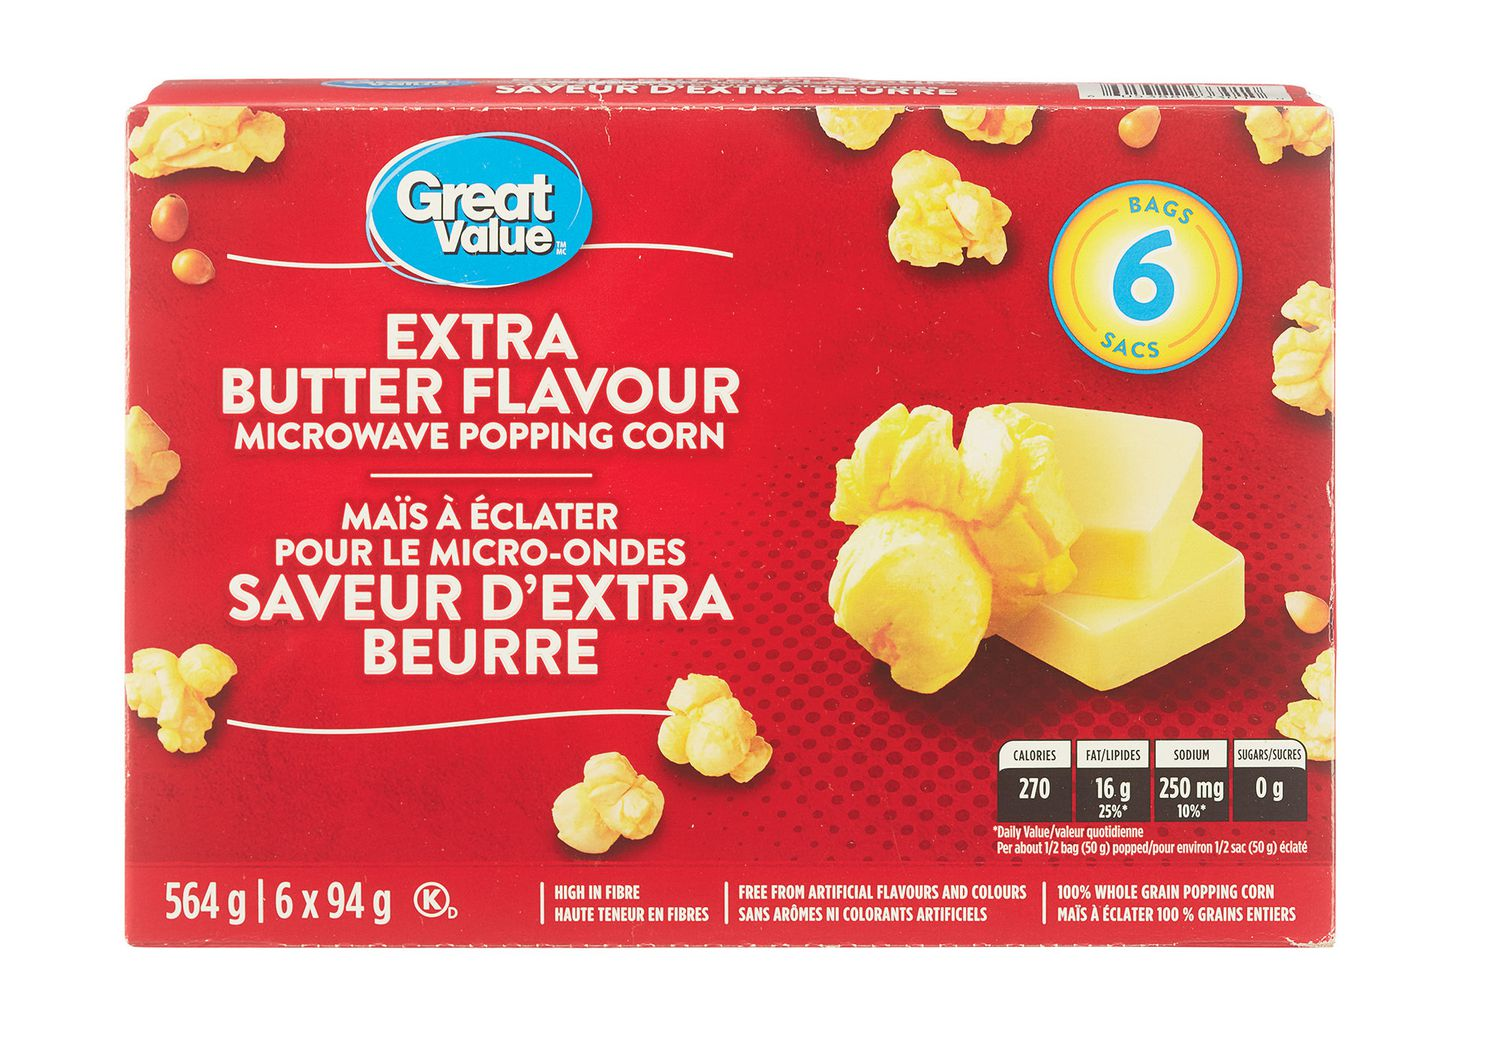 Great Value Extra Butter Flavor Microwave Popcorn